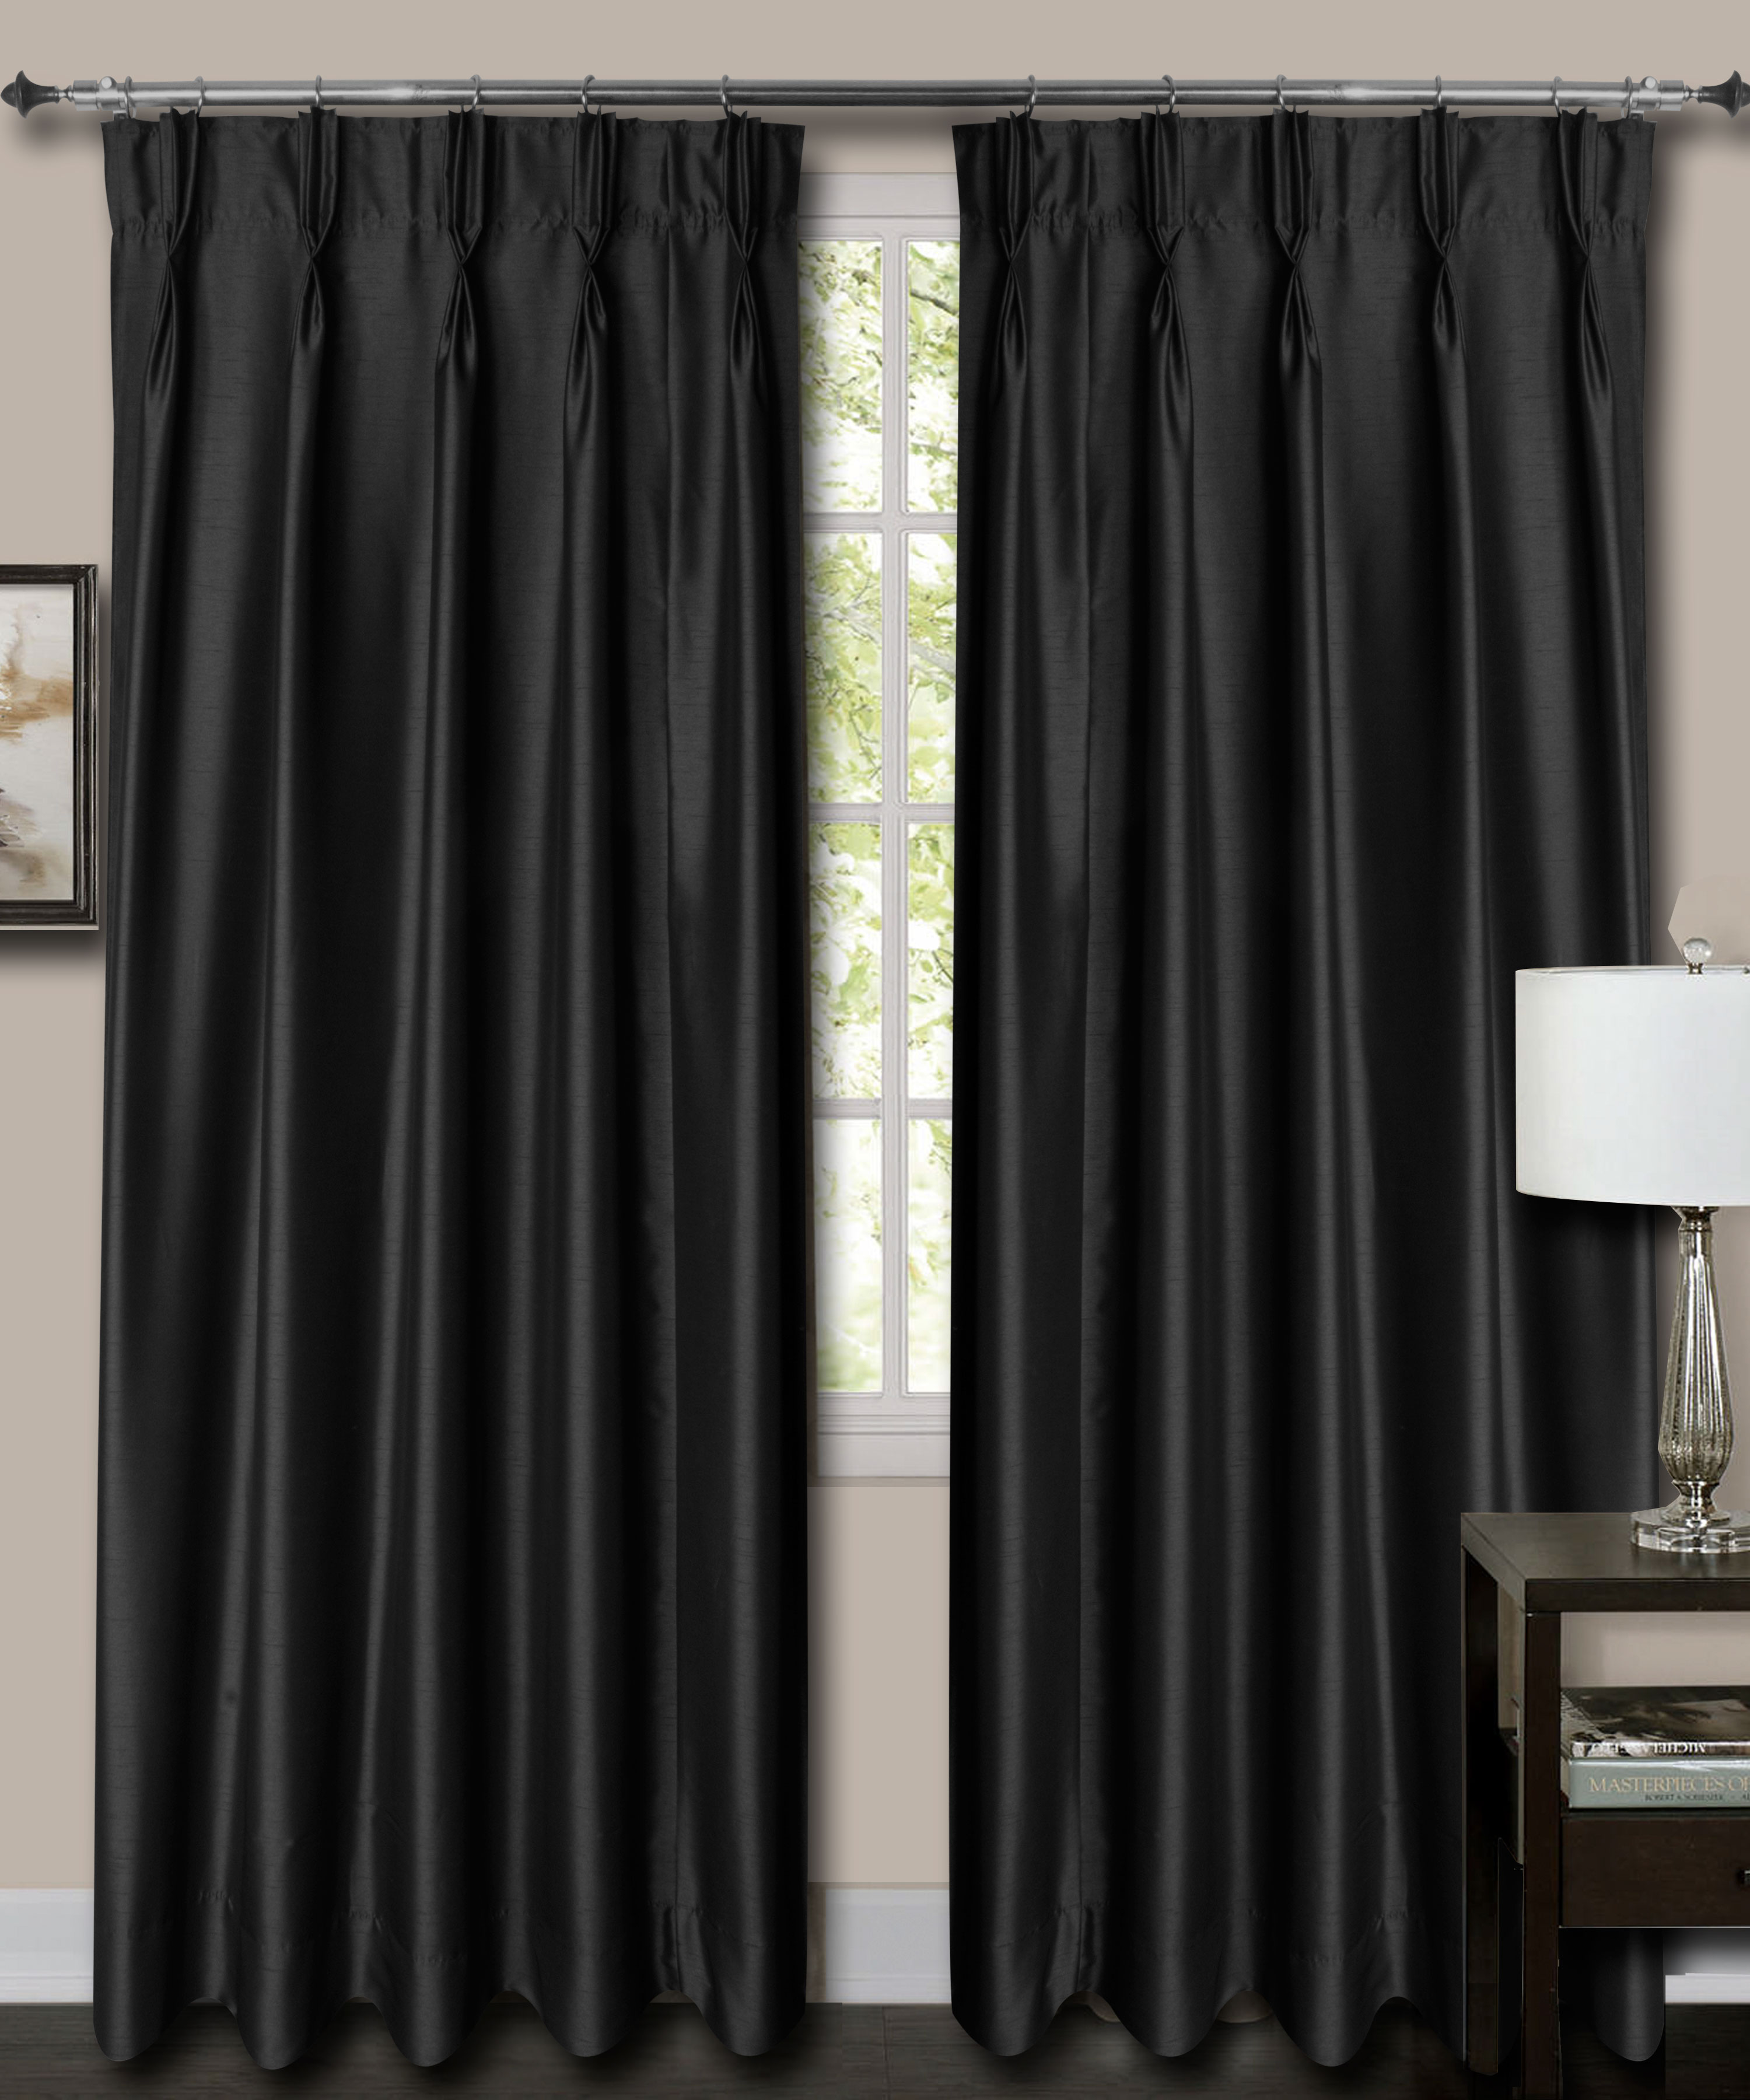 "French Pleat Top Black Faux Silk Dupioni Curtains. (39"" Wide,8 Feet Long,Without Lining)"